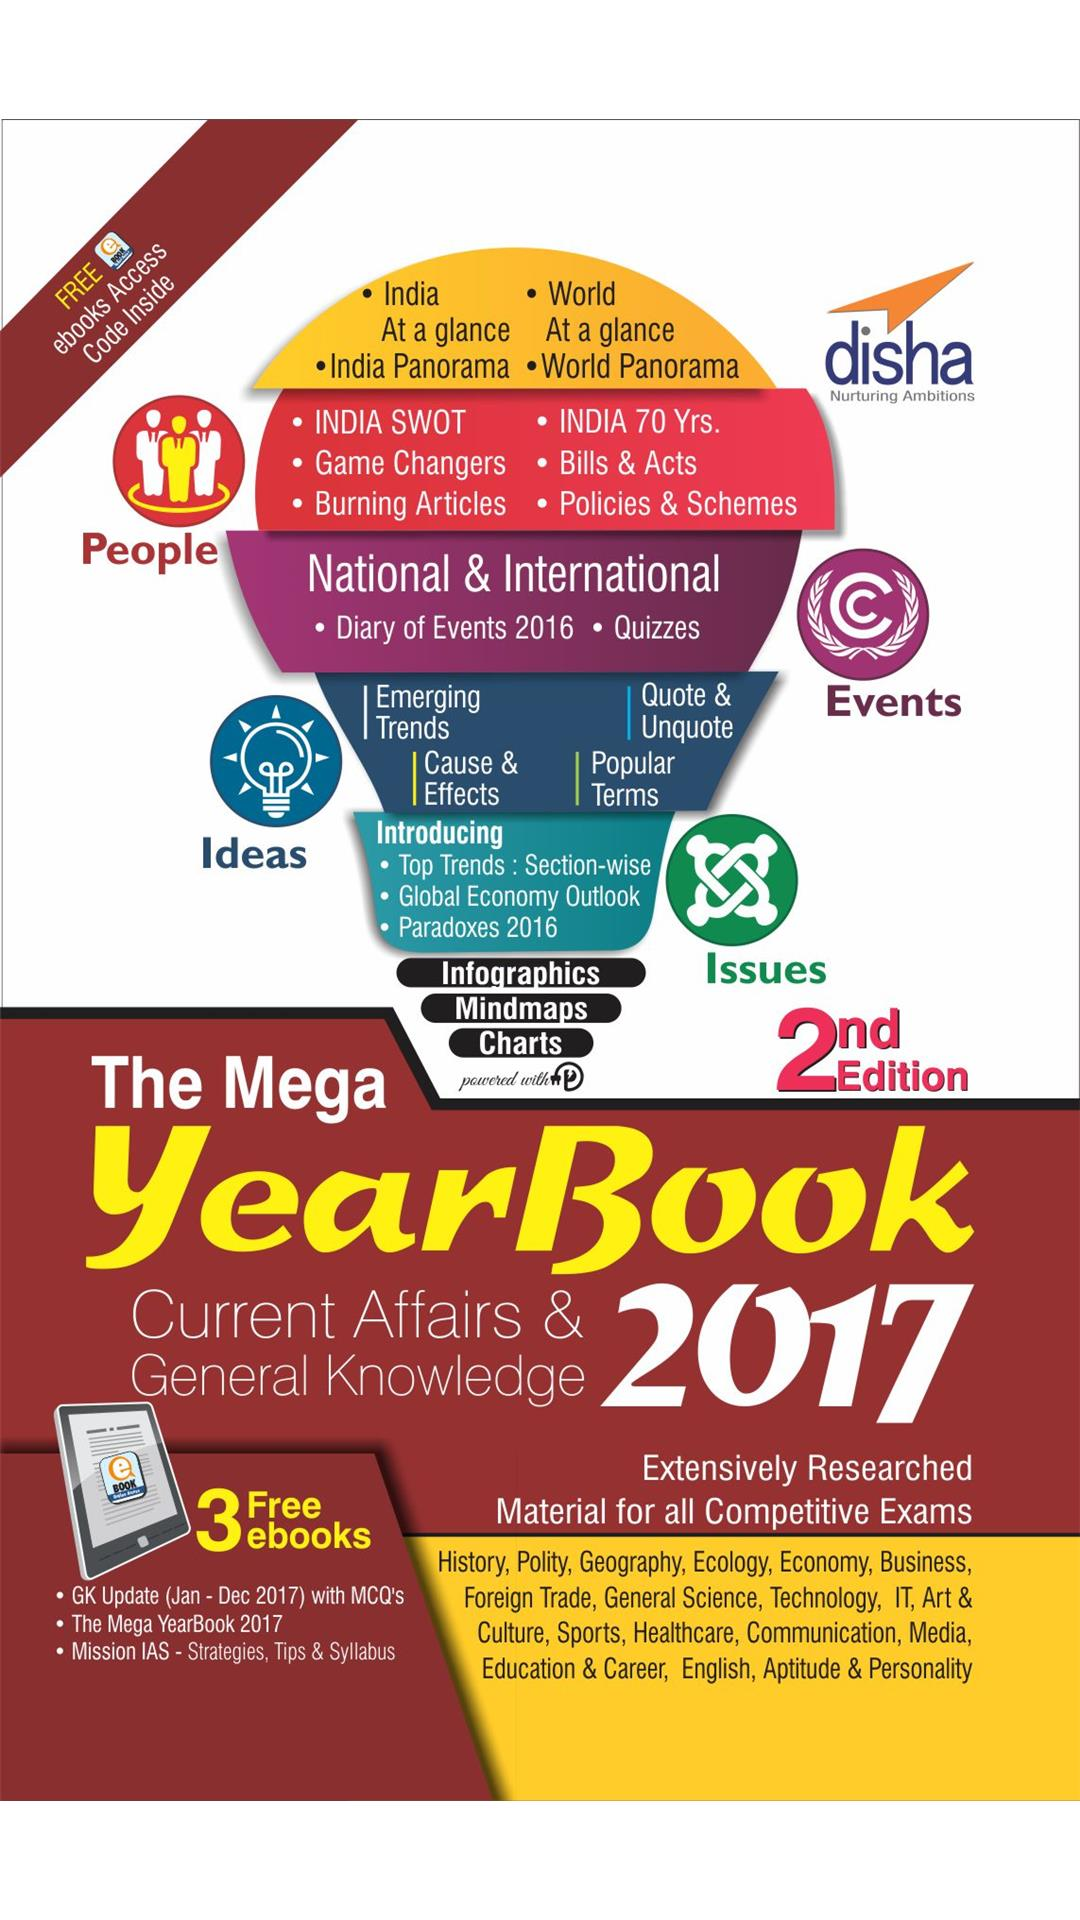 THE MEGA YEARBOOK 2017 - Current Affairs & General Knowledge for Competitive Exams - 2nd Edition